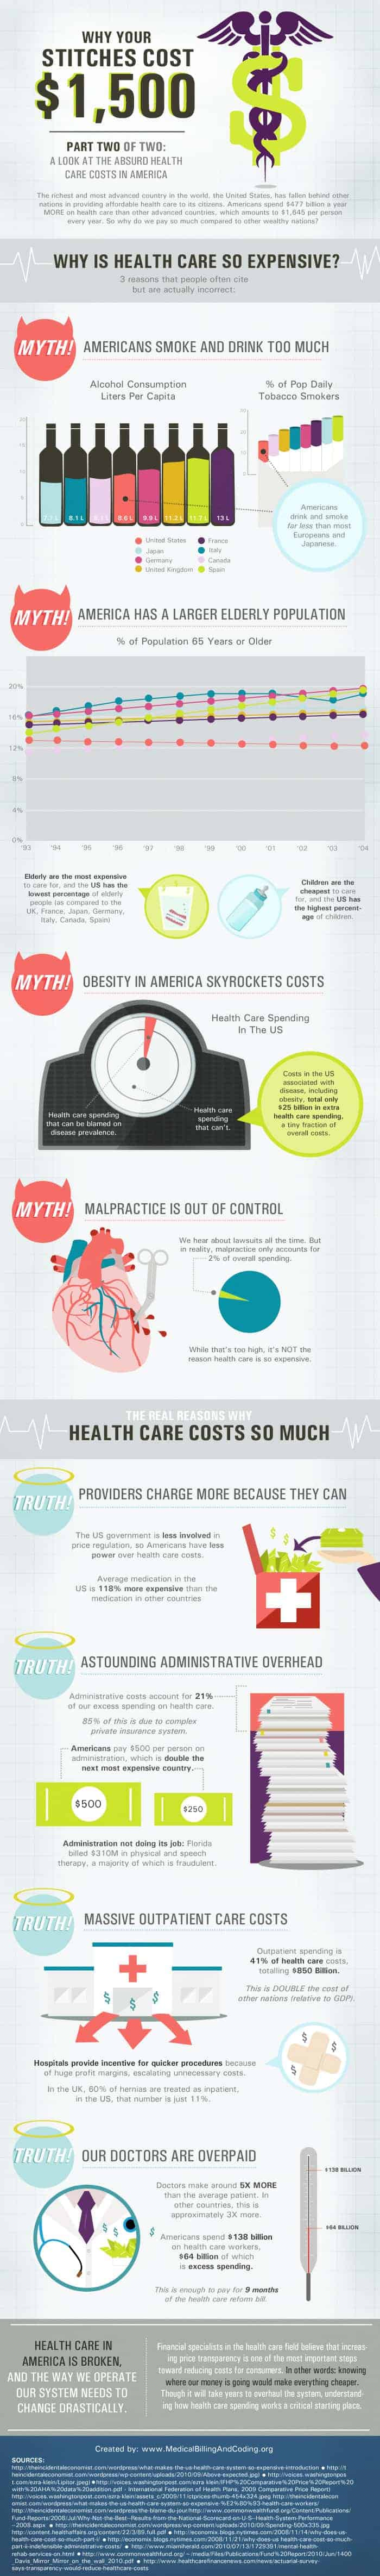 http://dailyinfographic.com/wp-content/uploads/2011/05/Medical-Costs-2.jpg